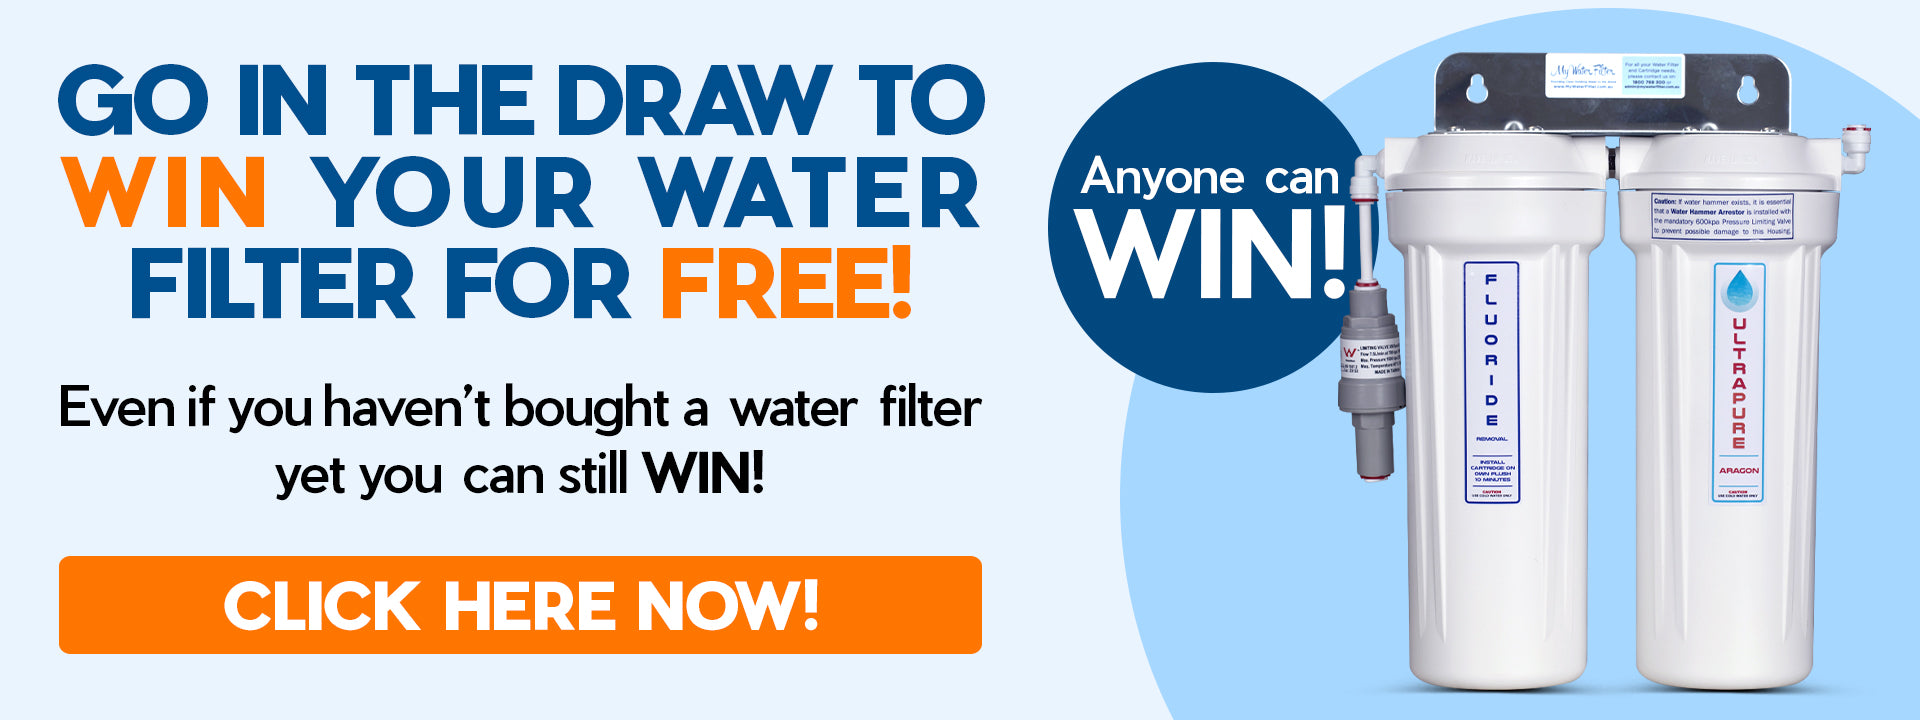 Win a Water Filter for Free Banner